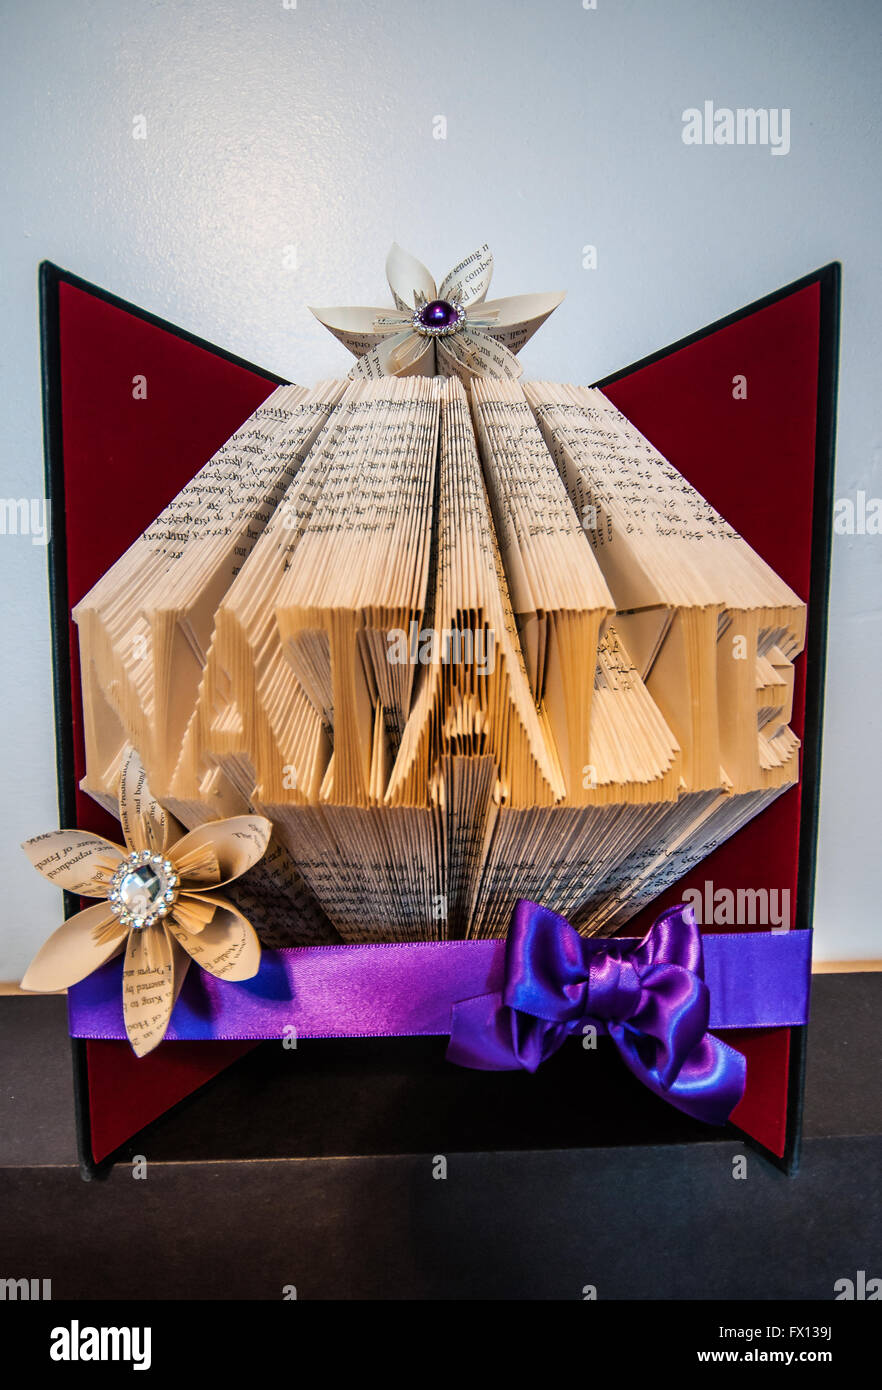 Book Folding. Art created by folding the pages of a hardback book to form images or words. They can be decorated Stock Photo